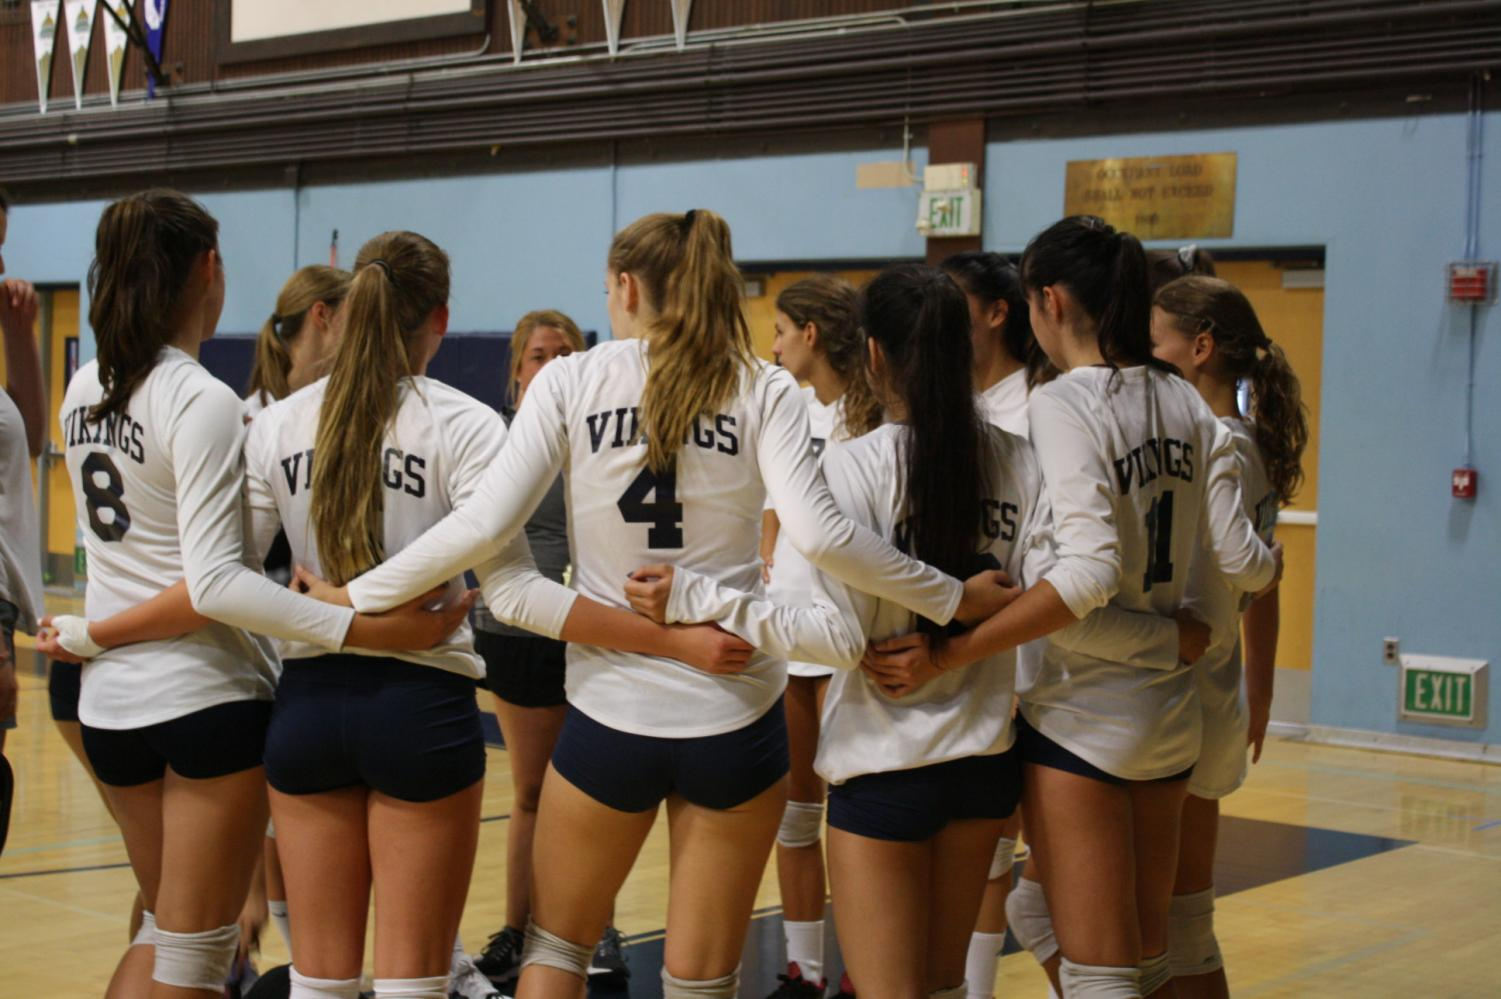 Oakmont girls volleyball team huddling together to plan their next play